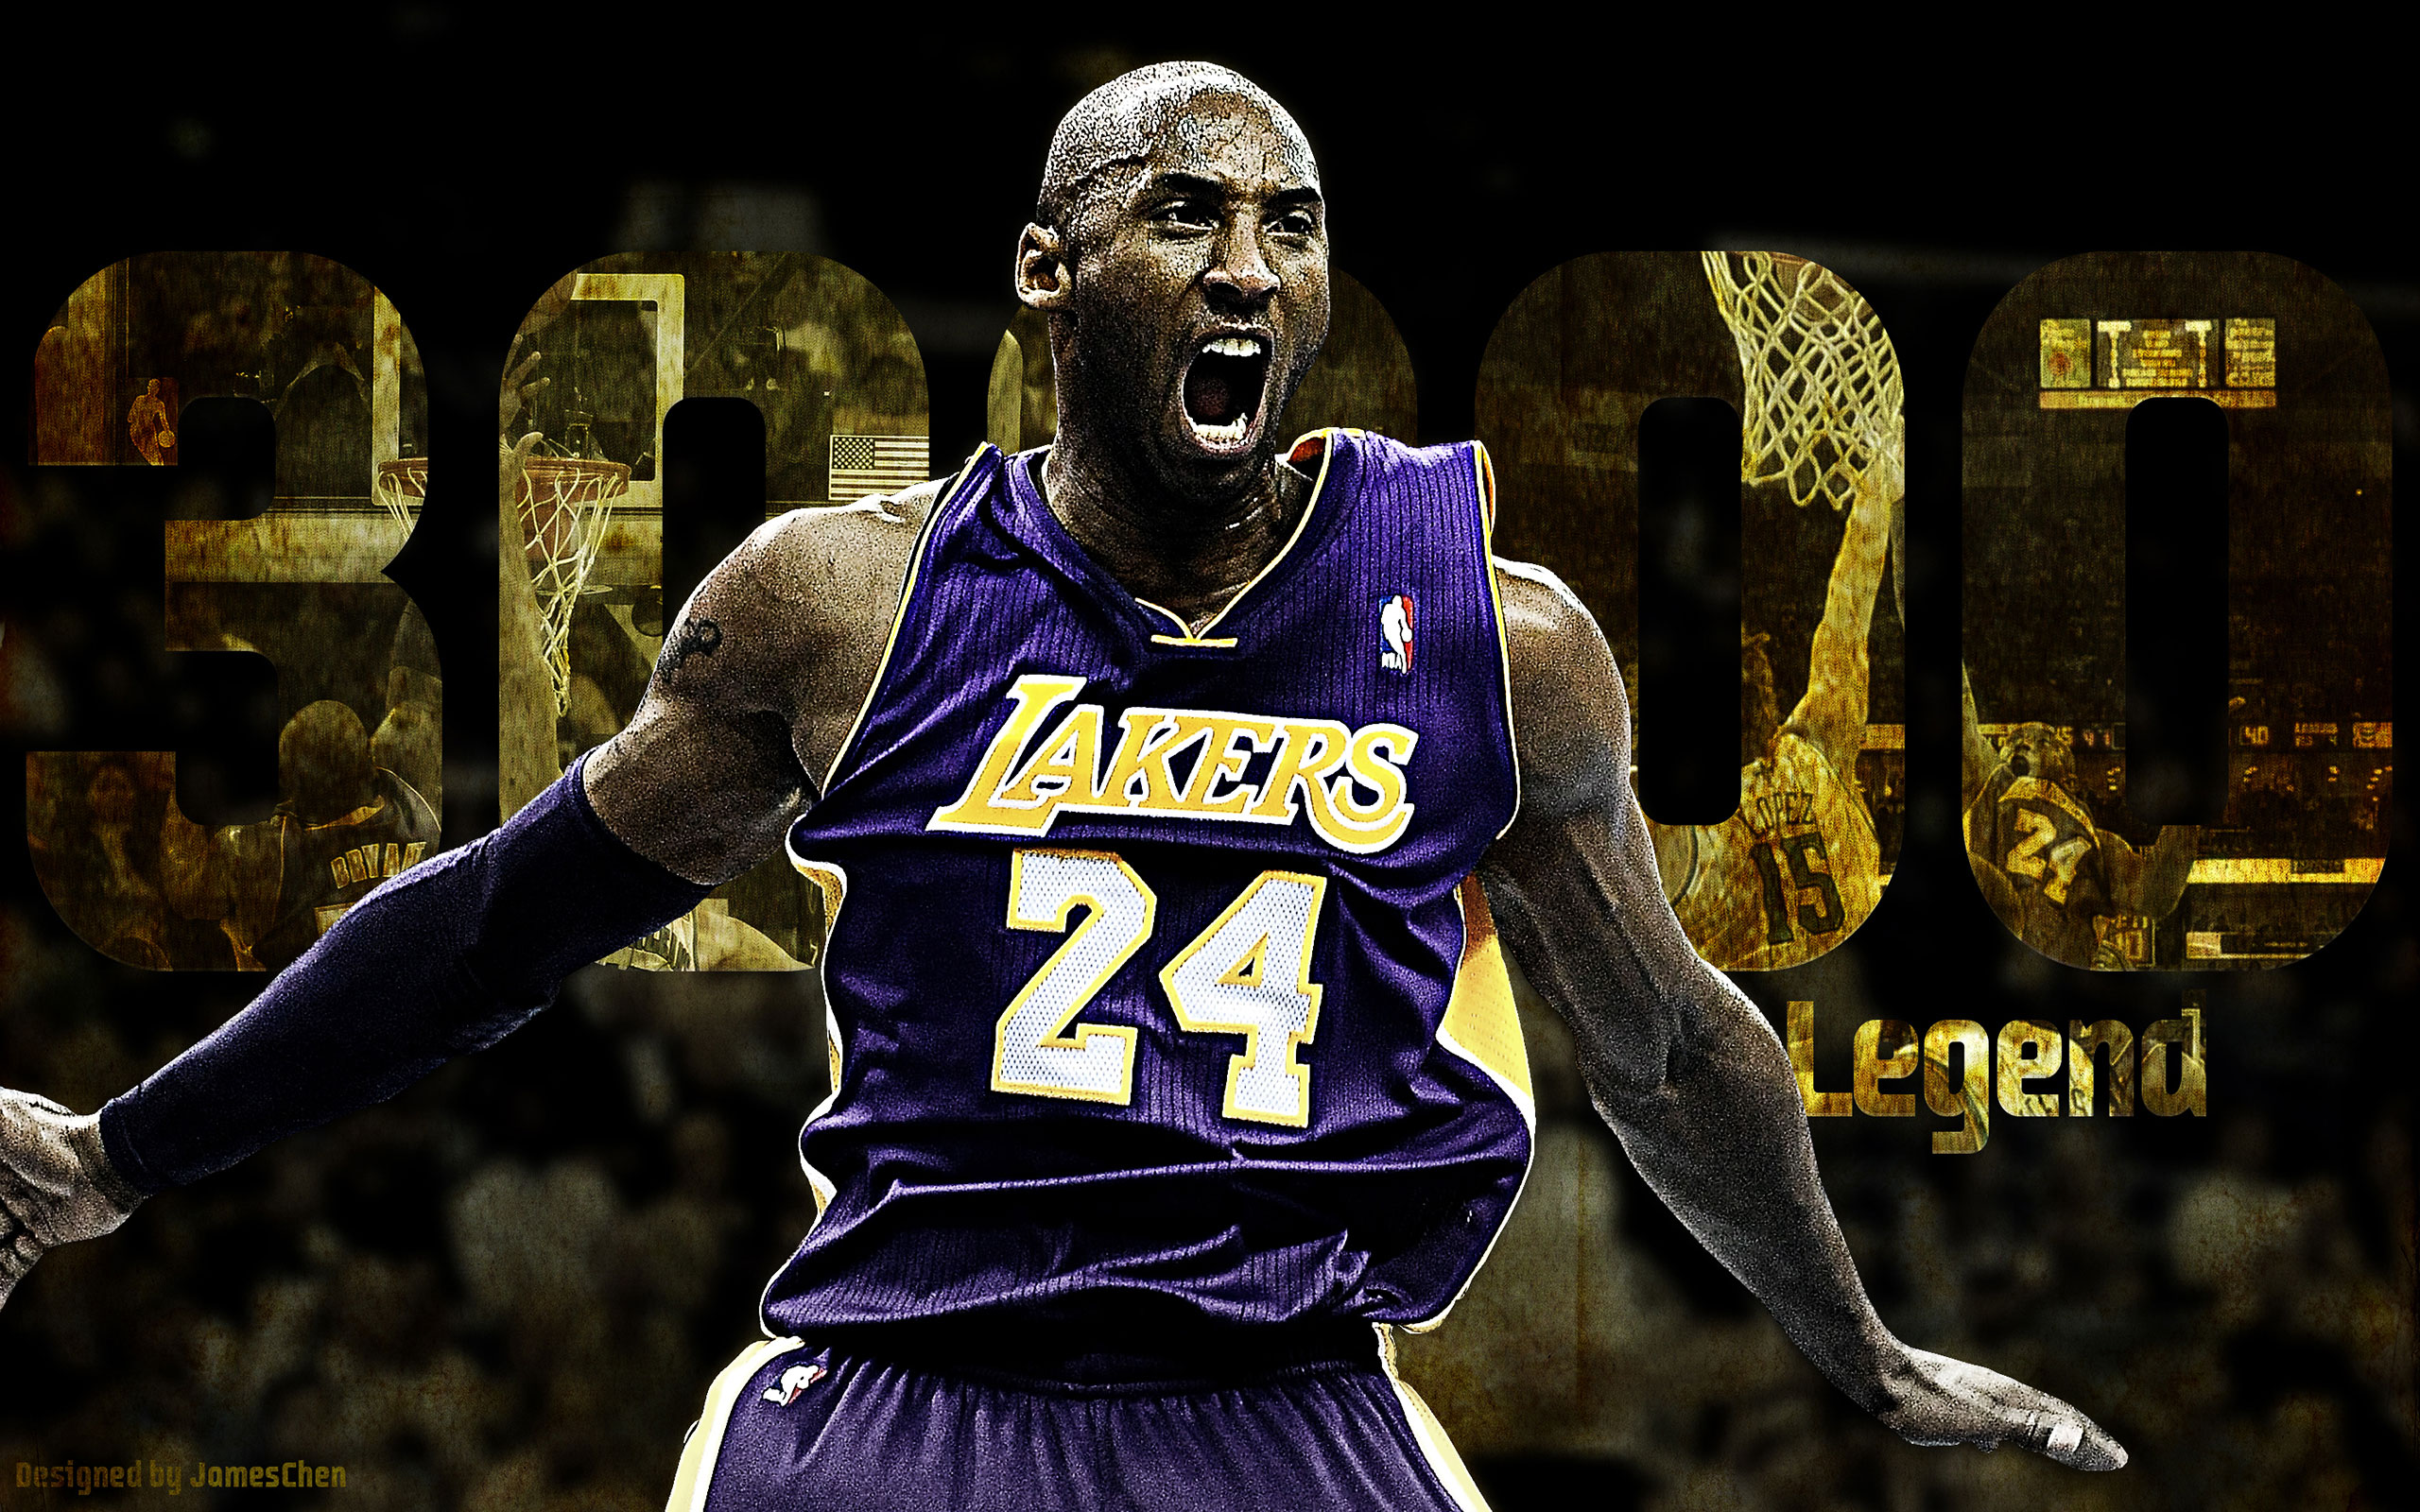 Wallpapers de la NBA en HD!